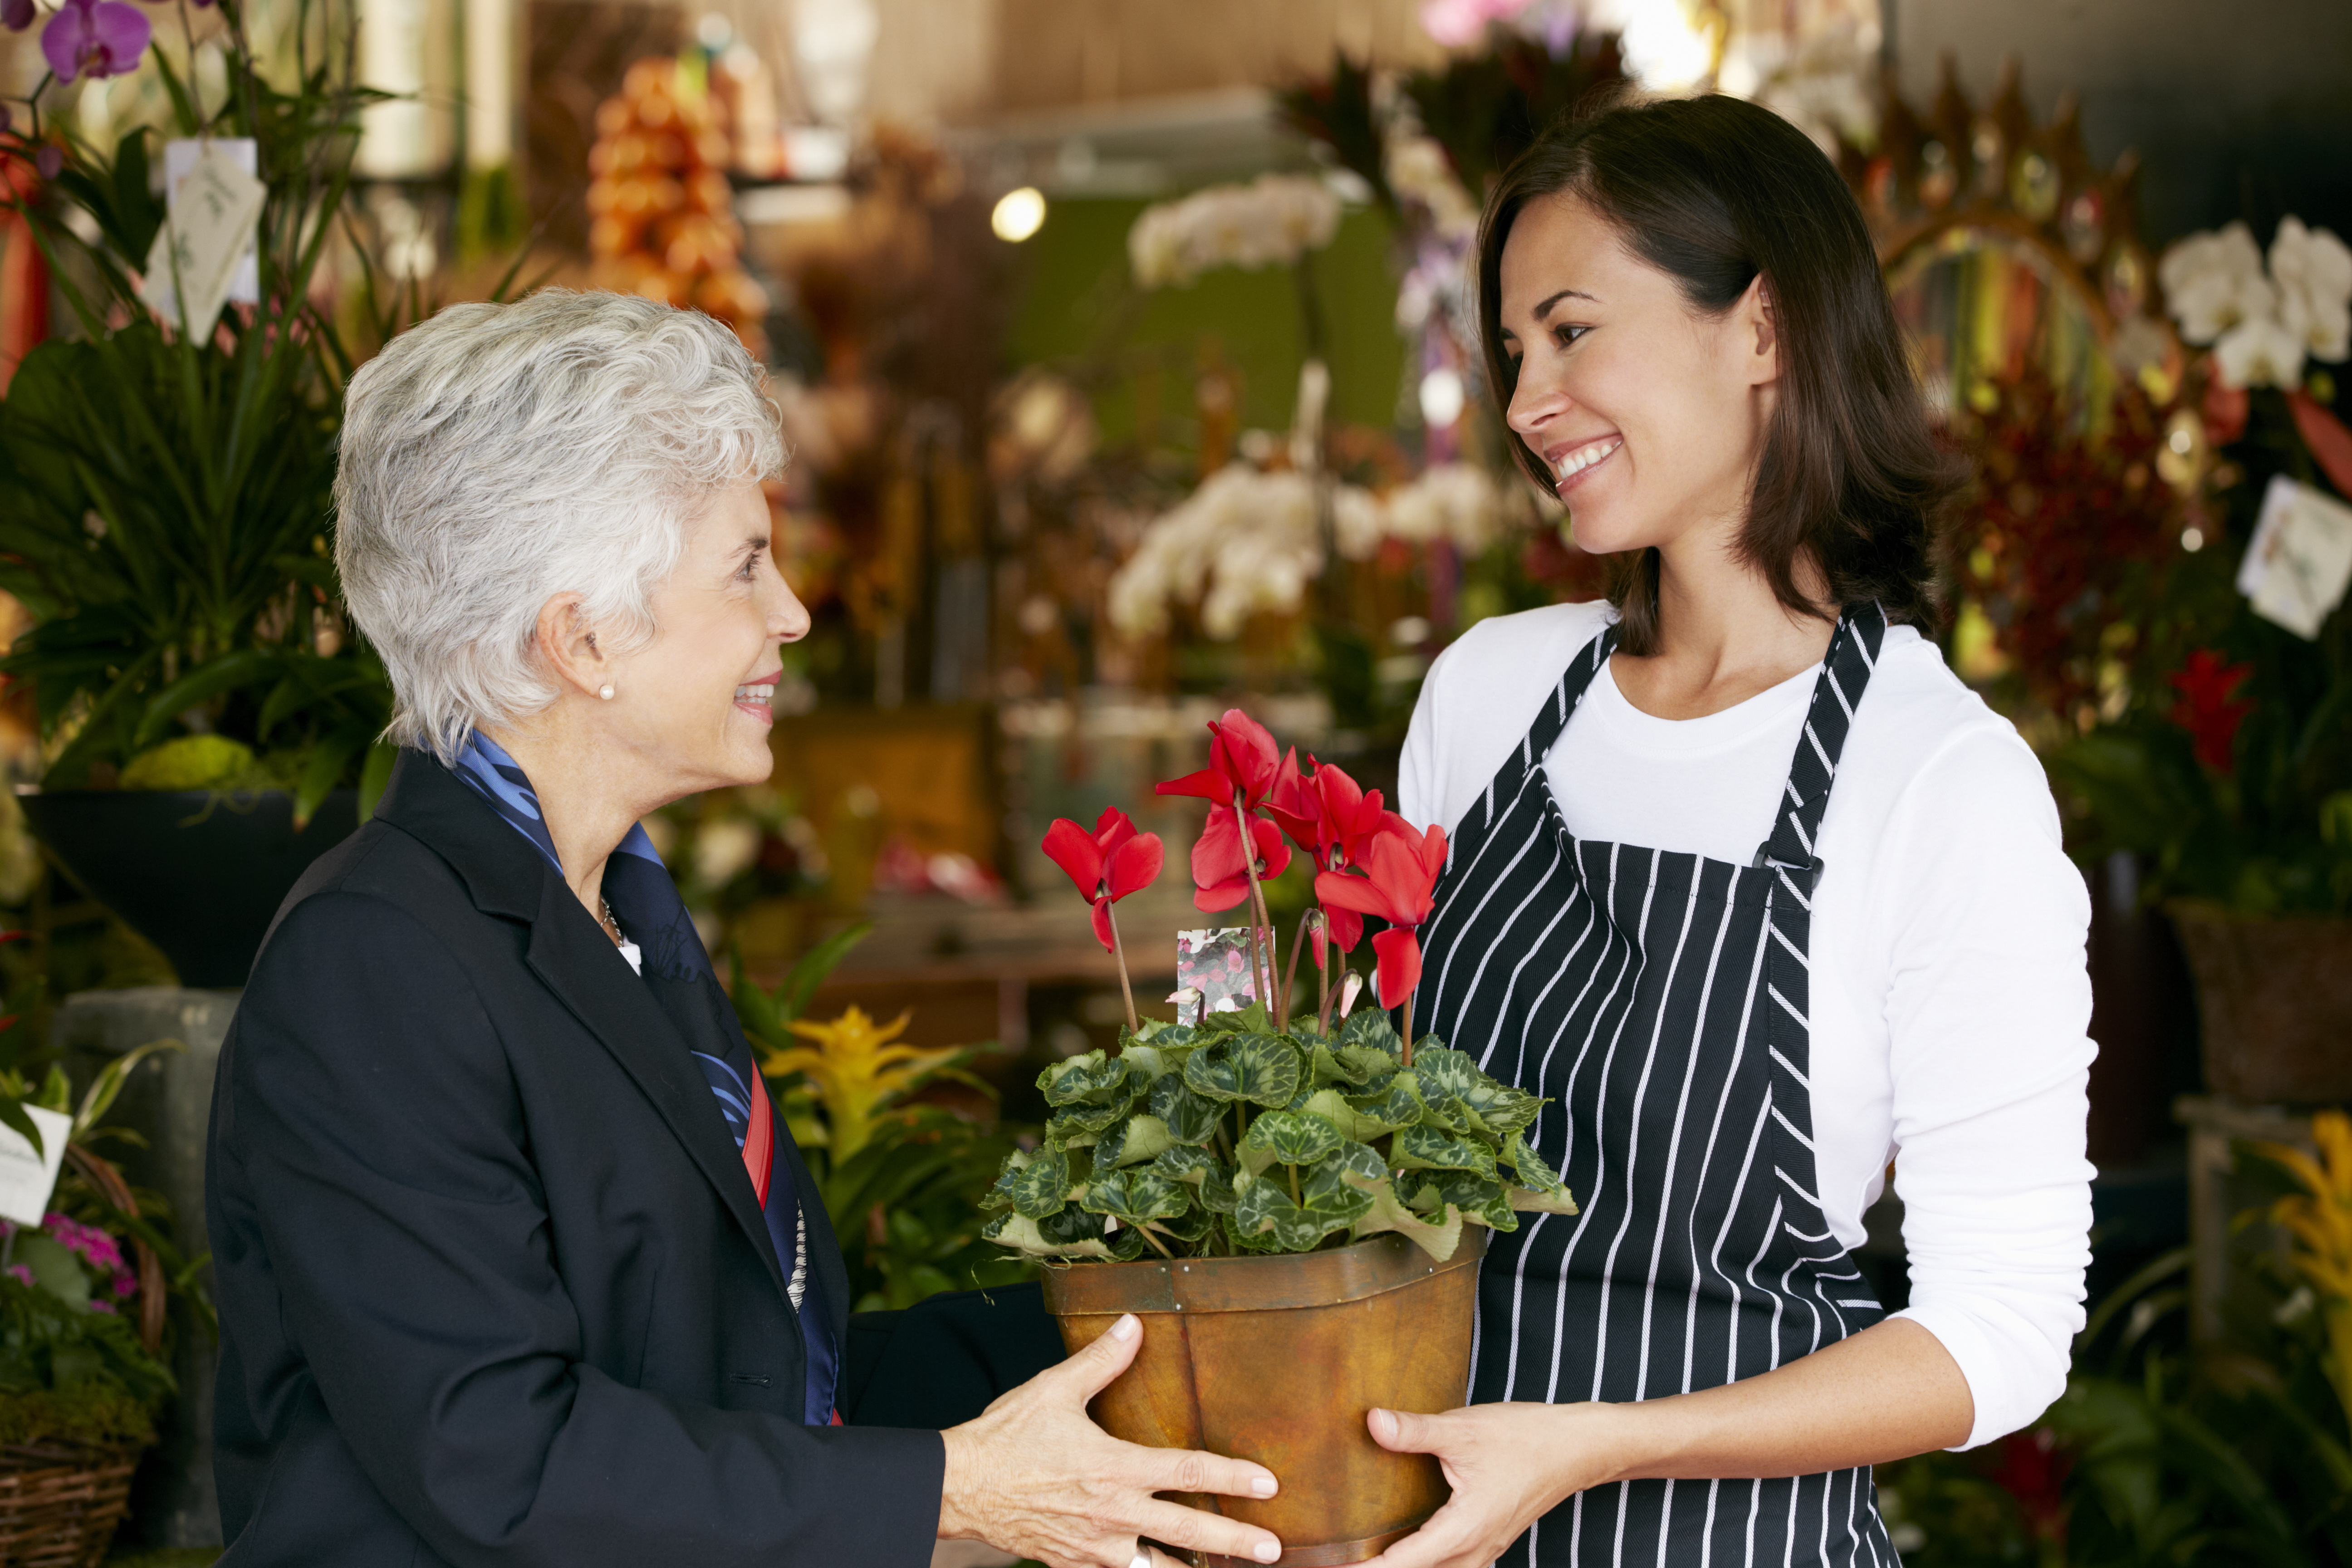 Worker giving personal customer service to client